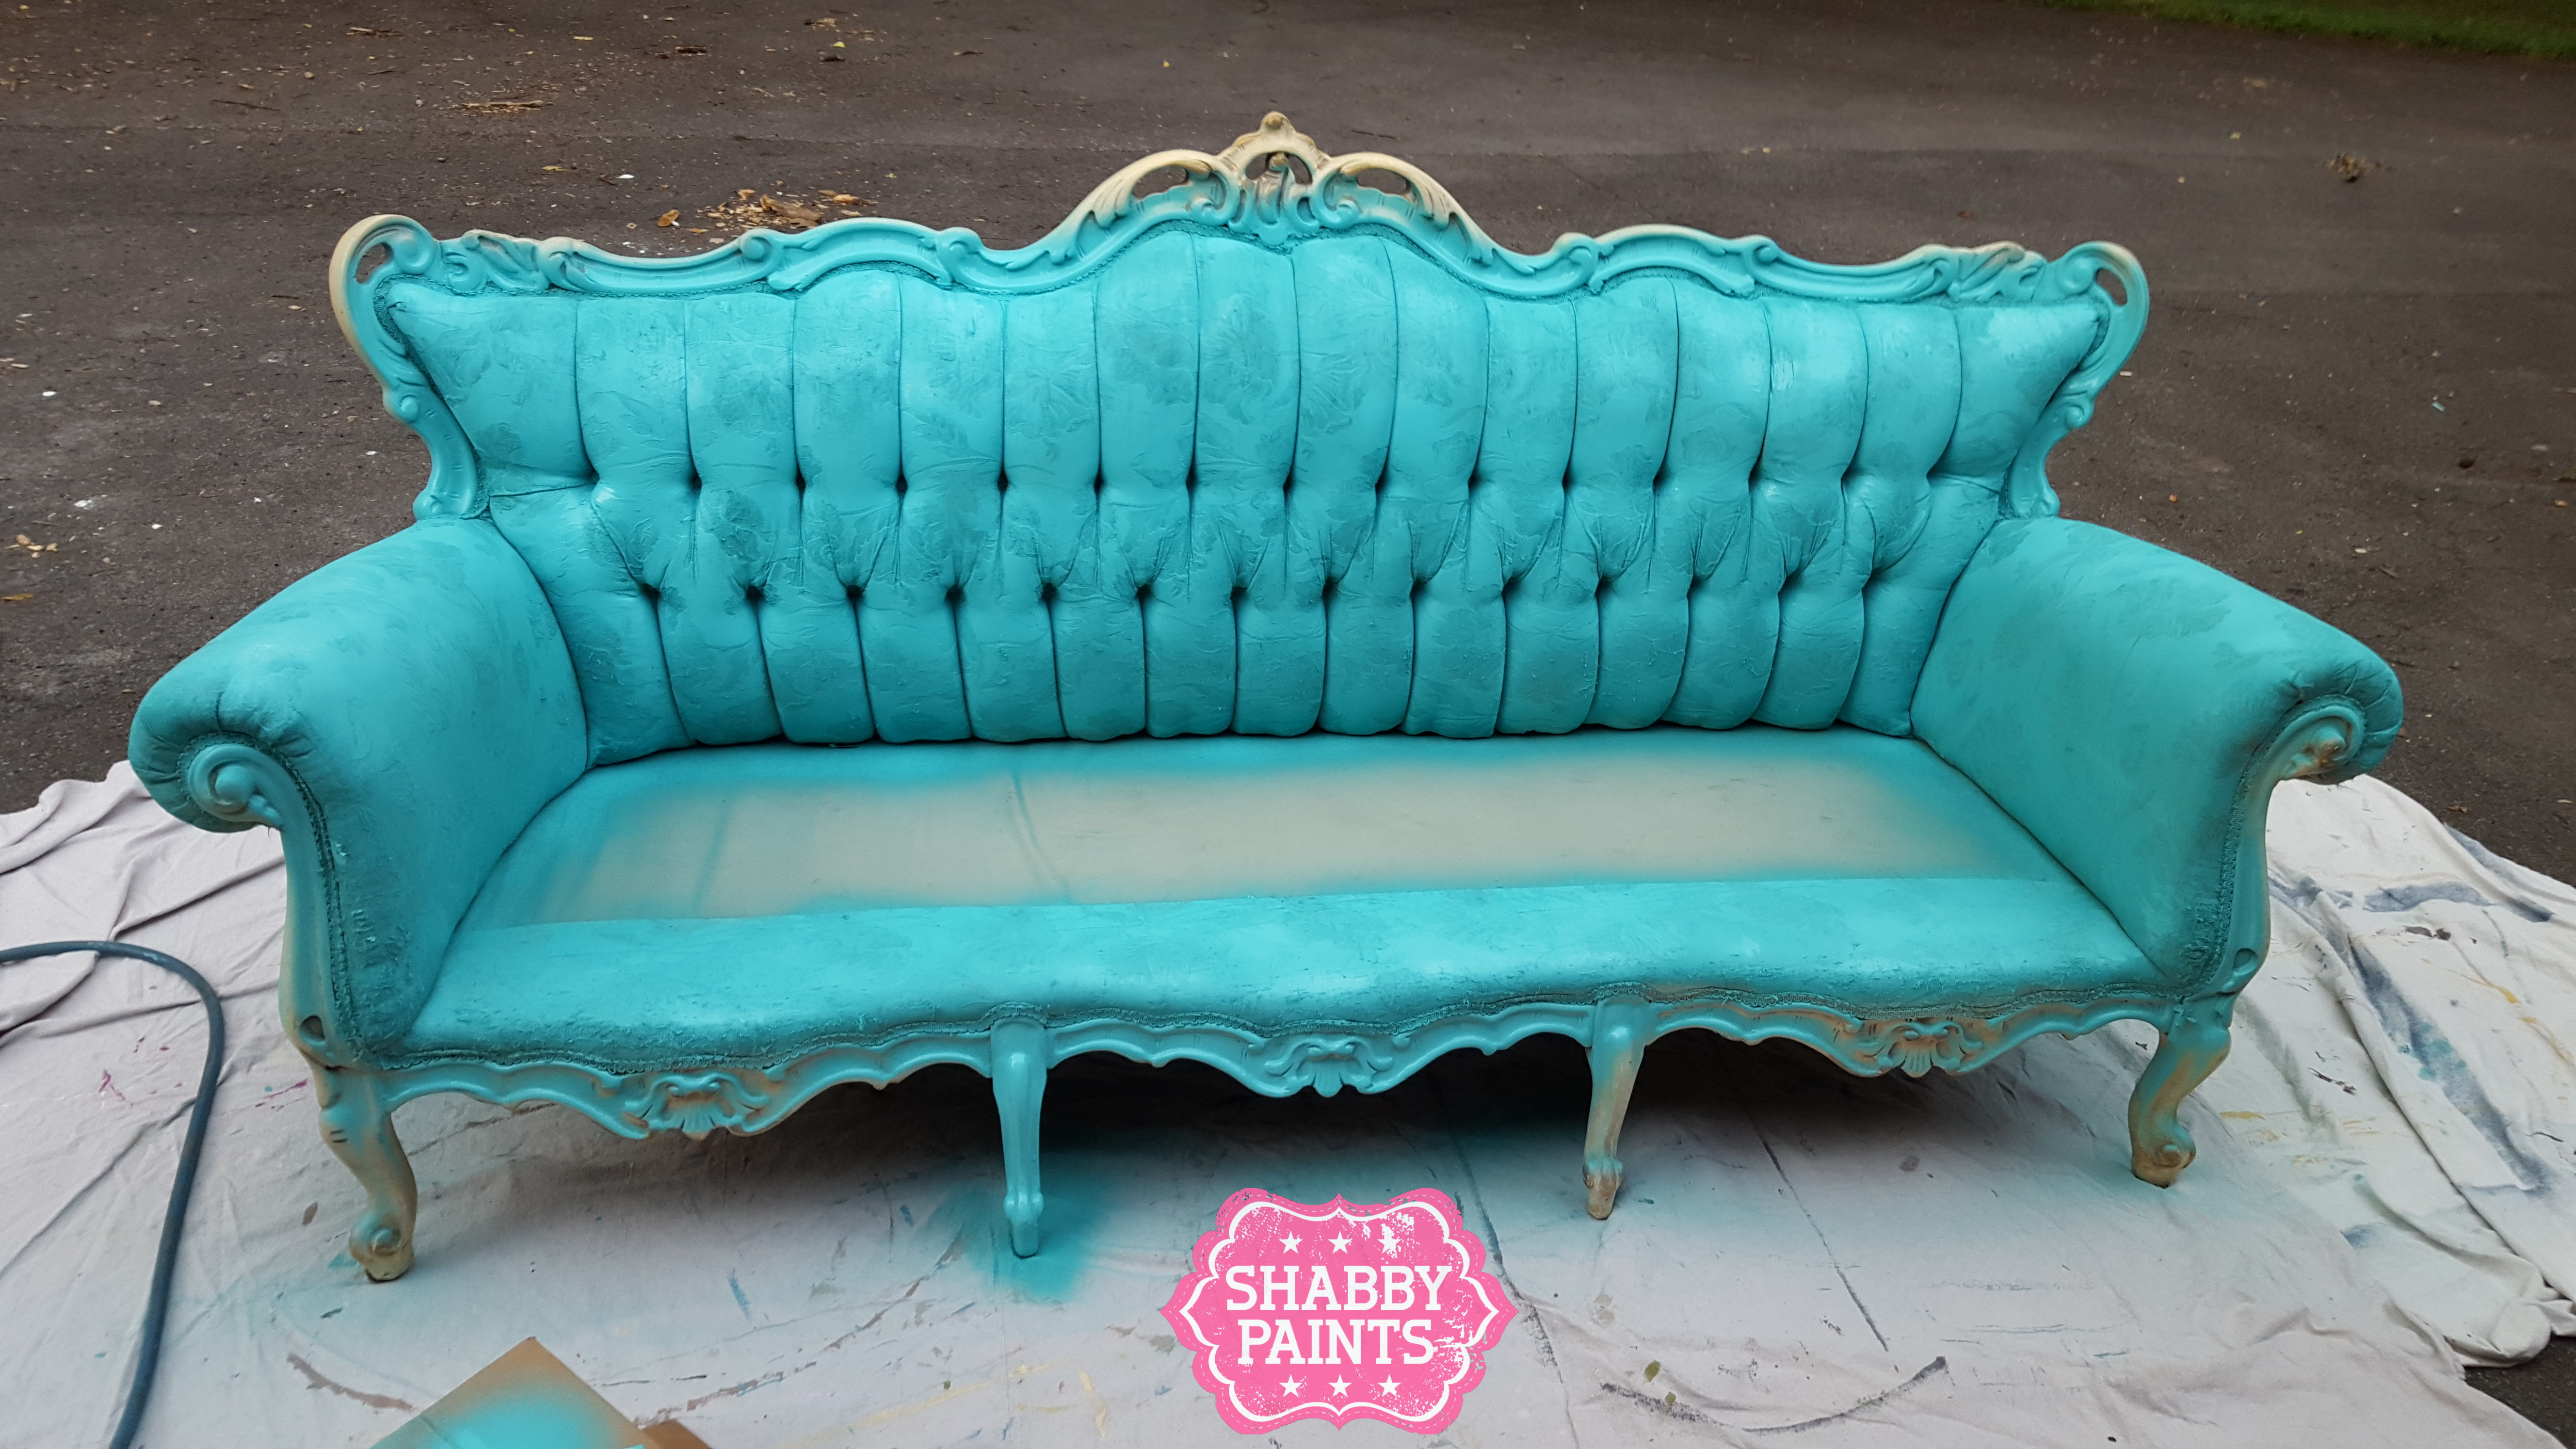 Painting Fabric With Chalk Paint Shabby Paints